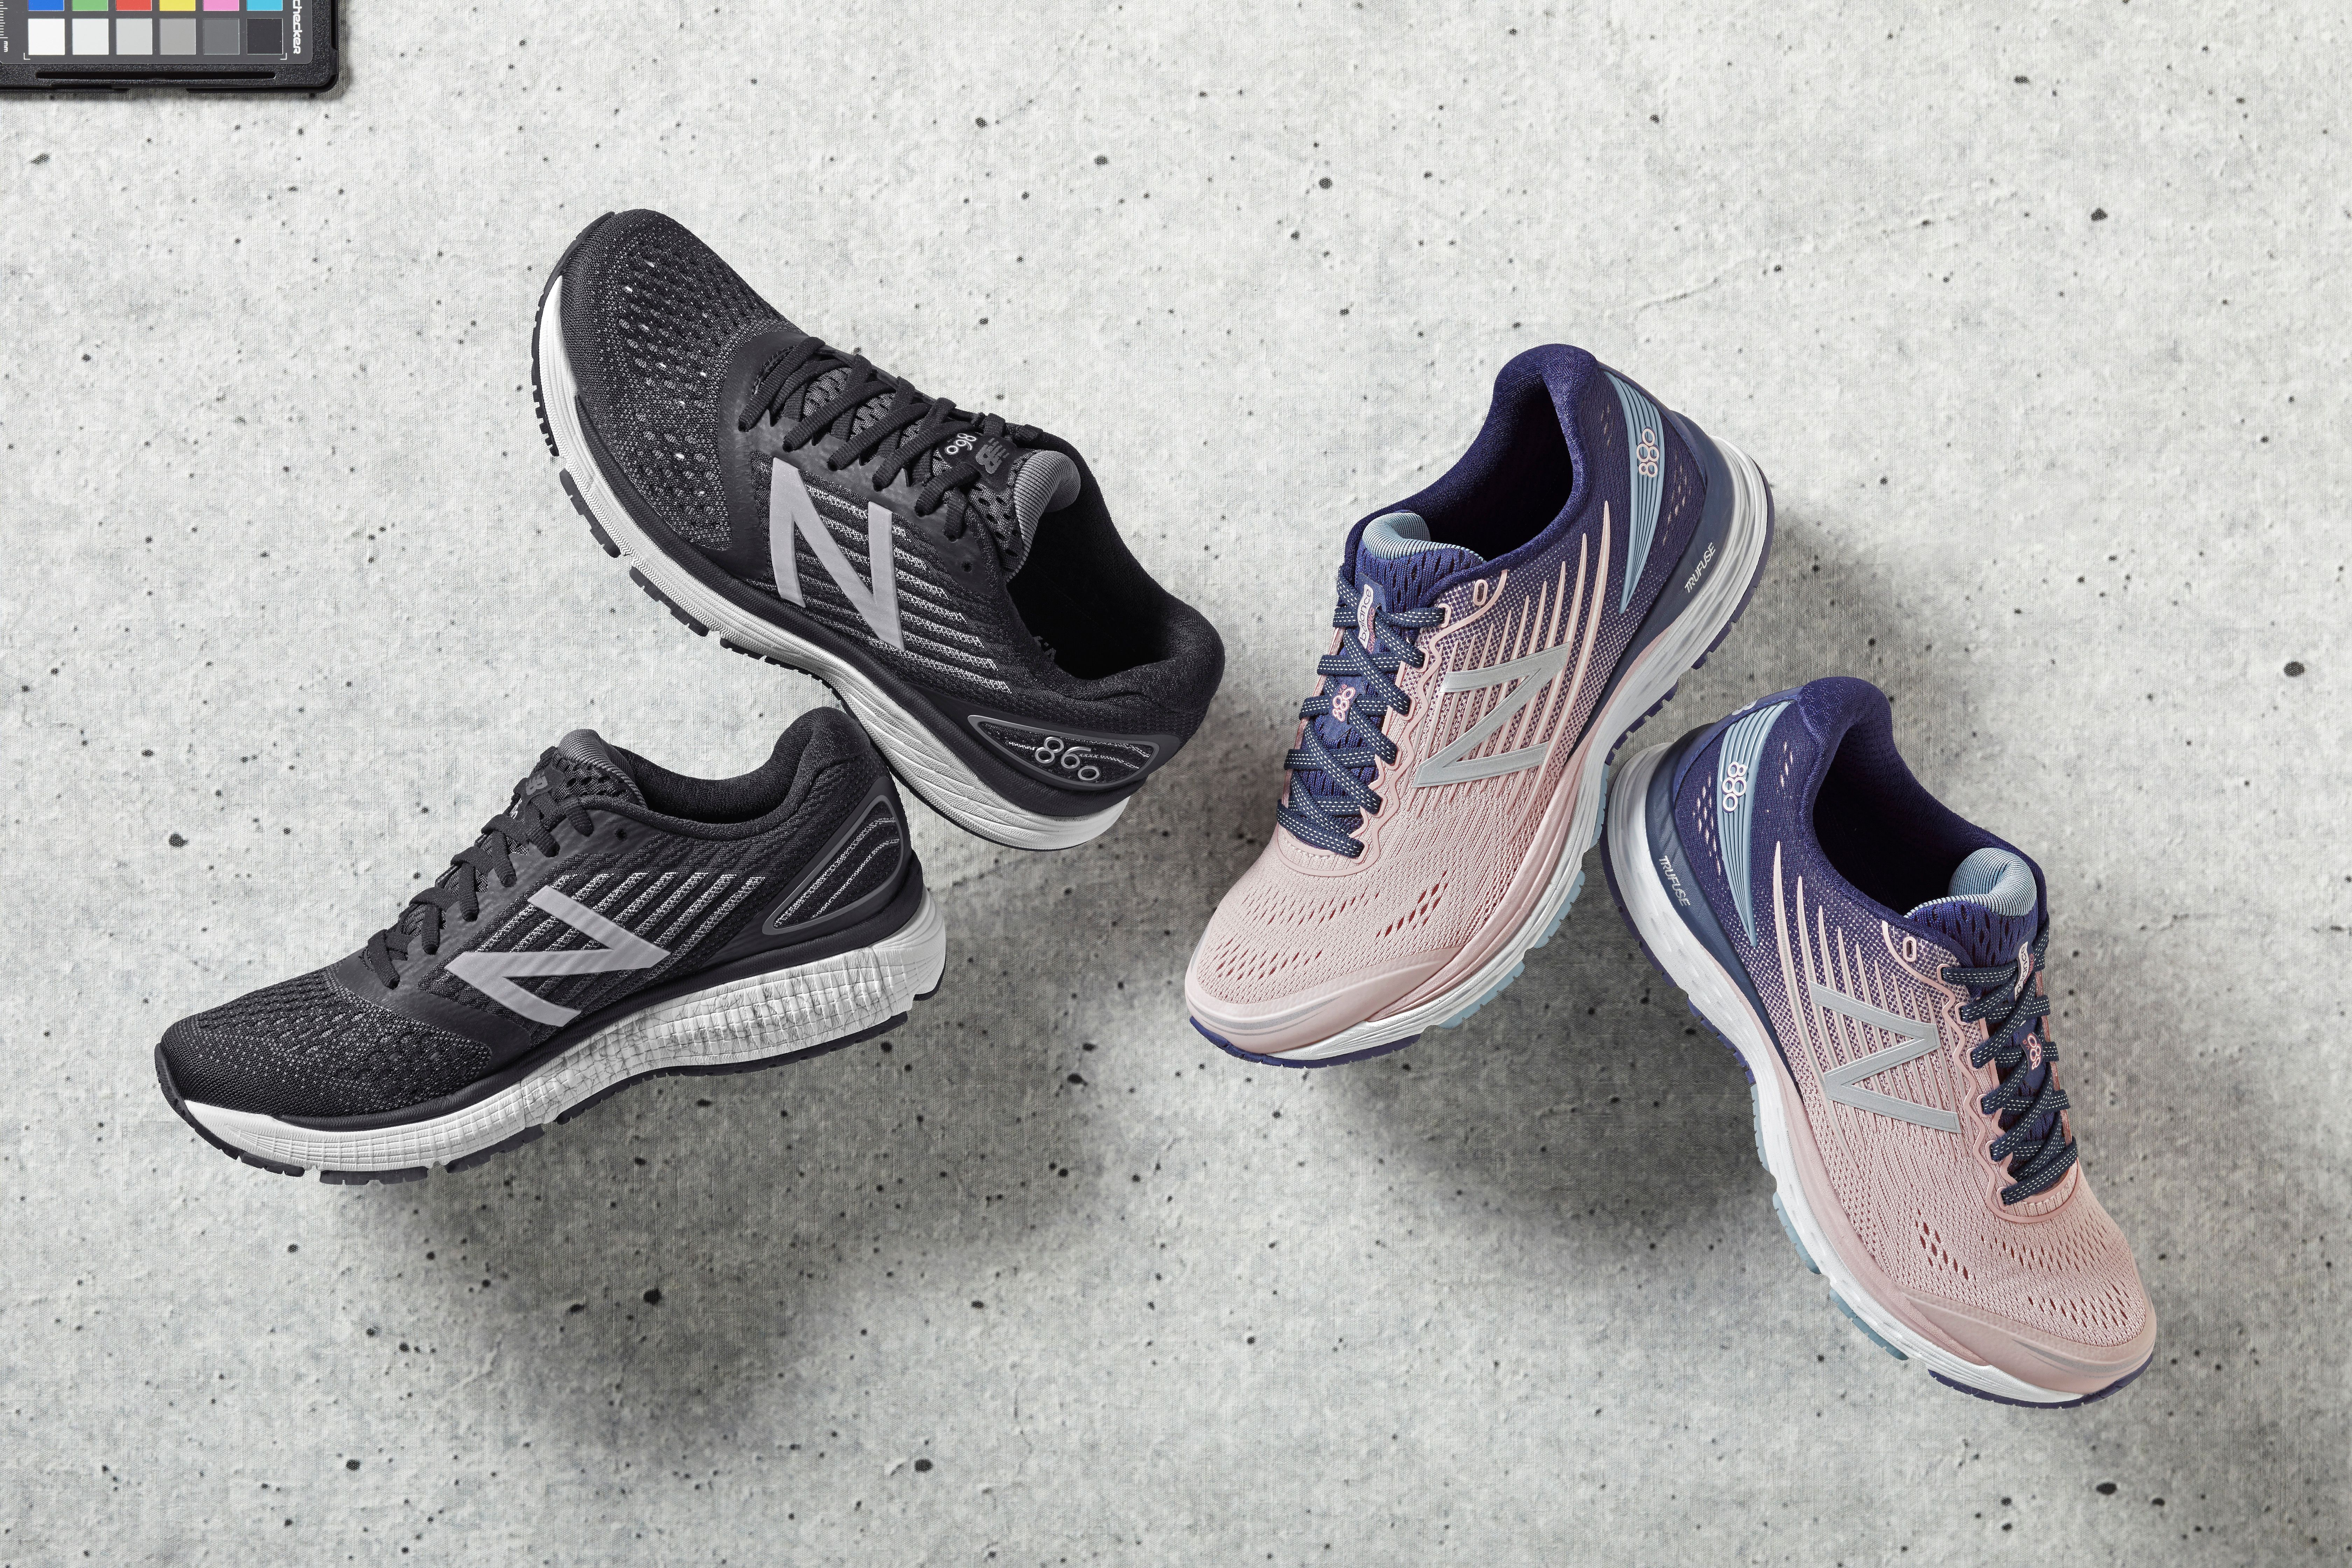 new balance women's support shoes